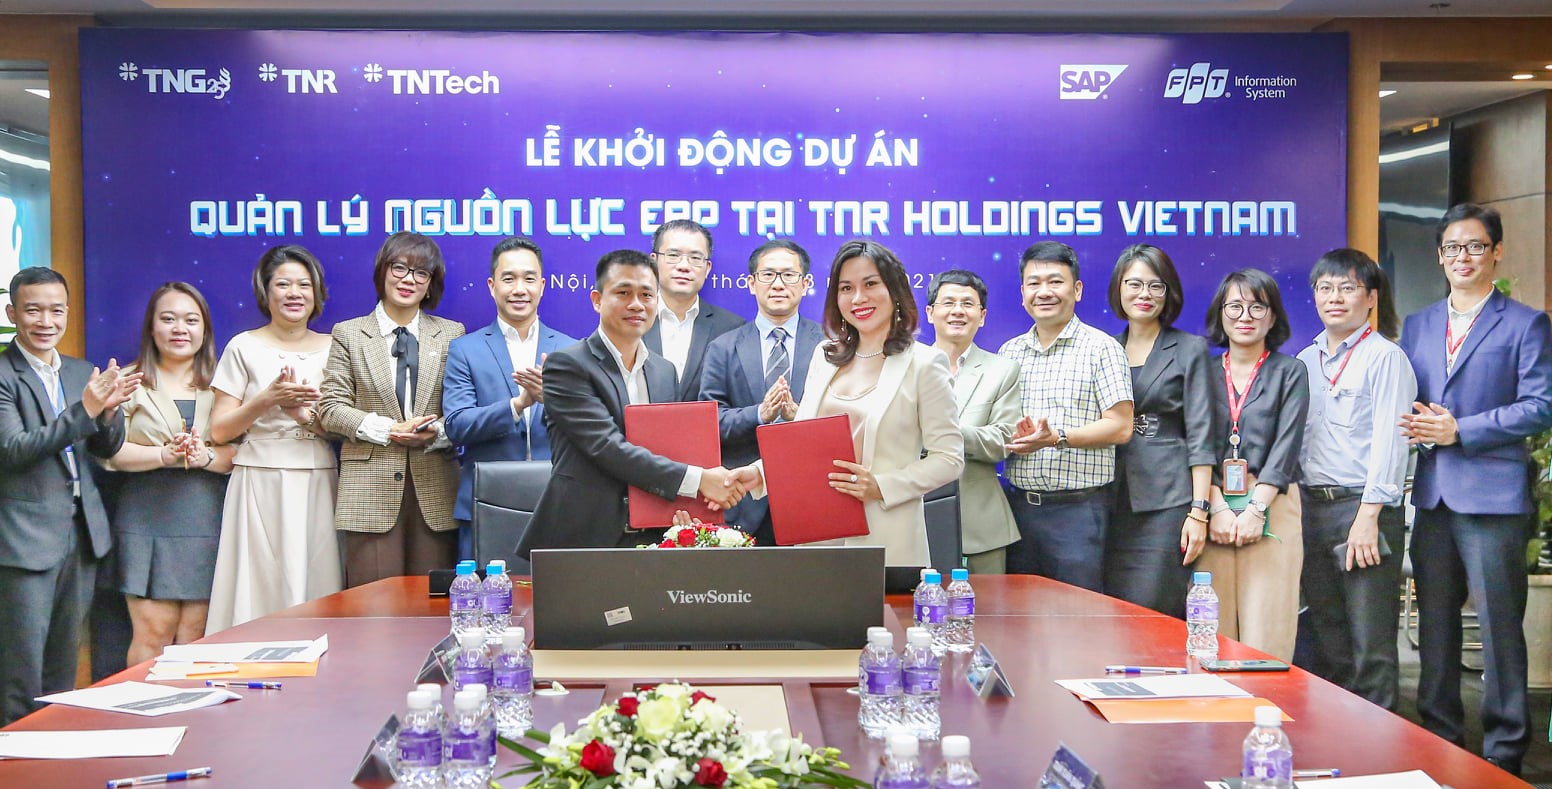 TNR Holdings Vietnam and FPT IS kick off the ERP SAP S/4HANA project